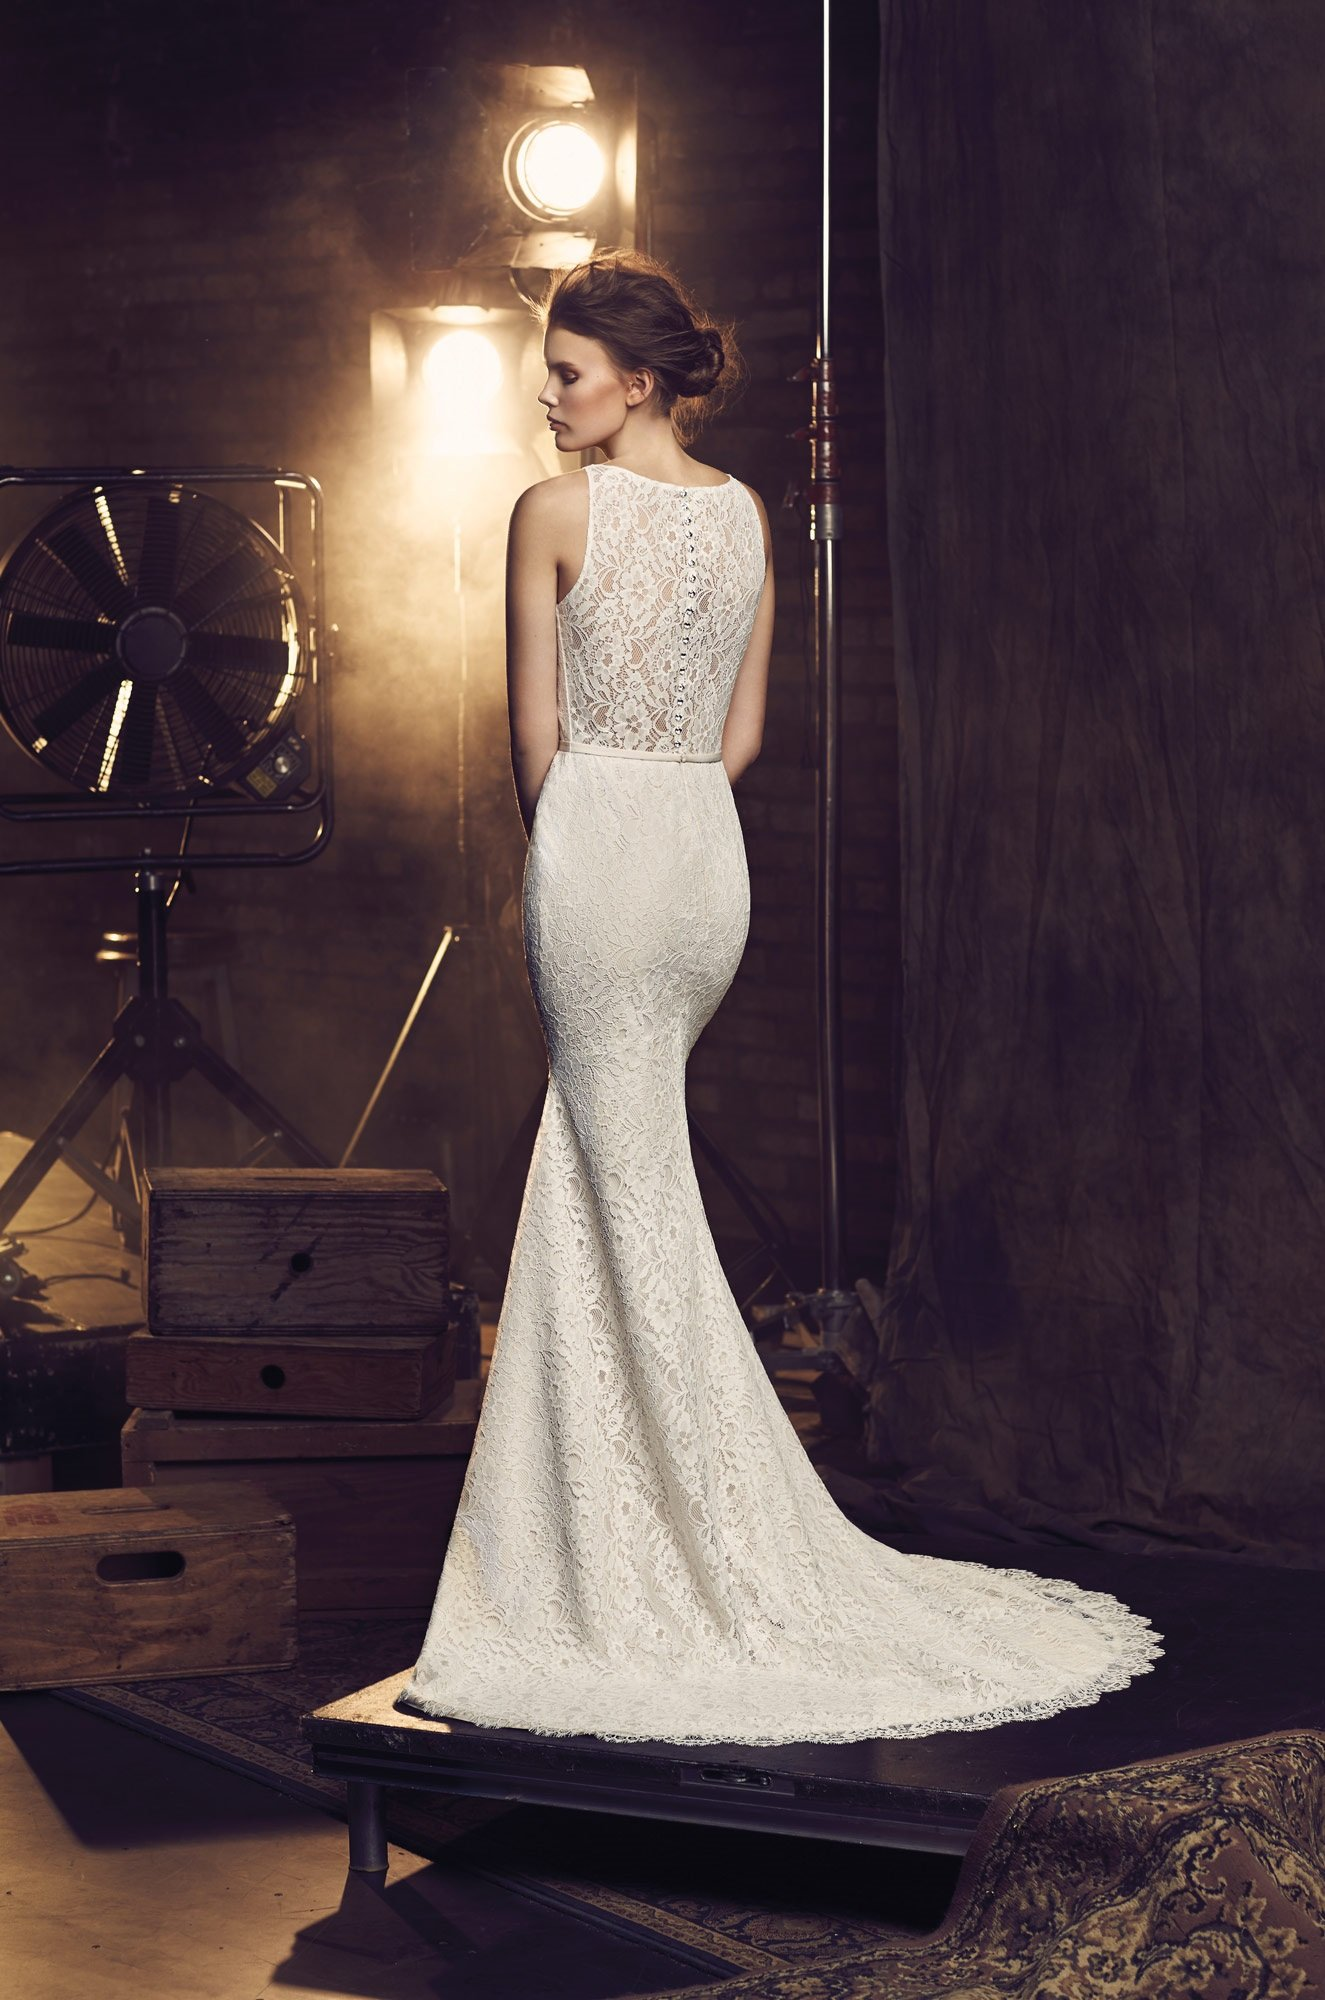 Fitted lace wedding dress style 2078 mikaella bridal for Fitted lace wedding dress